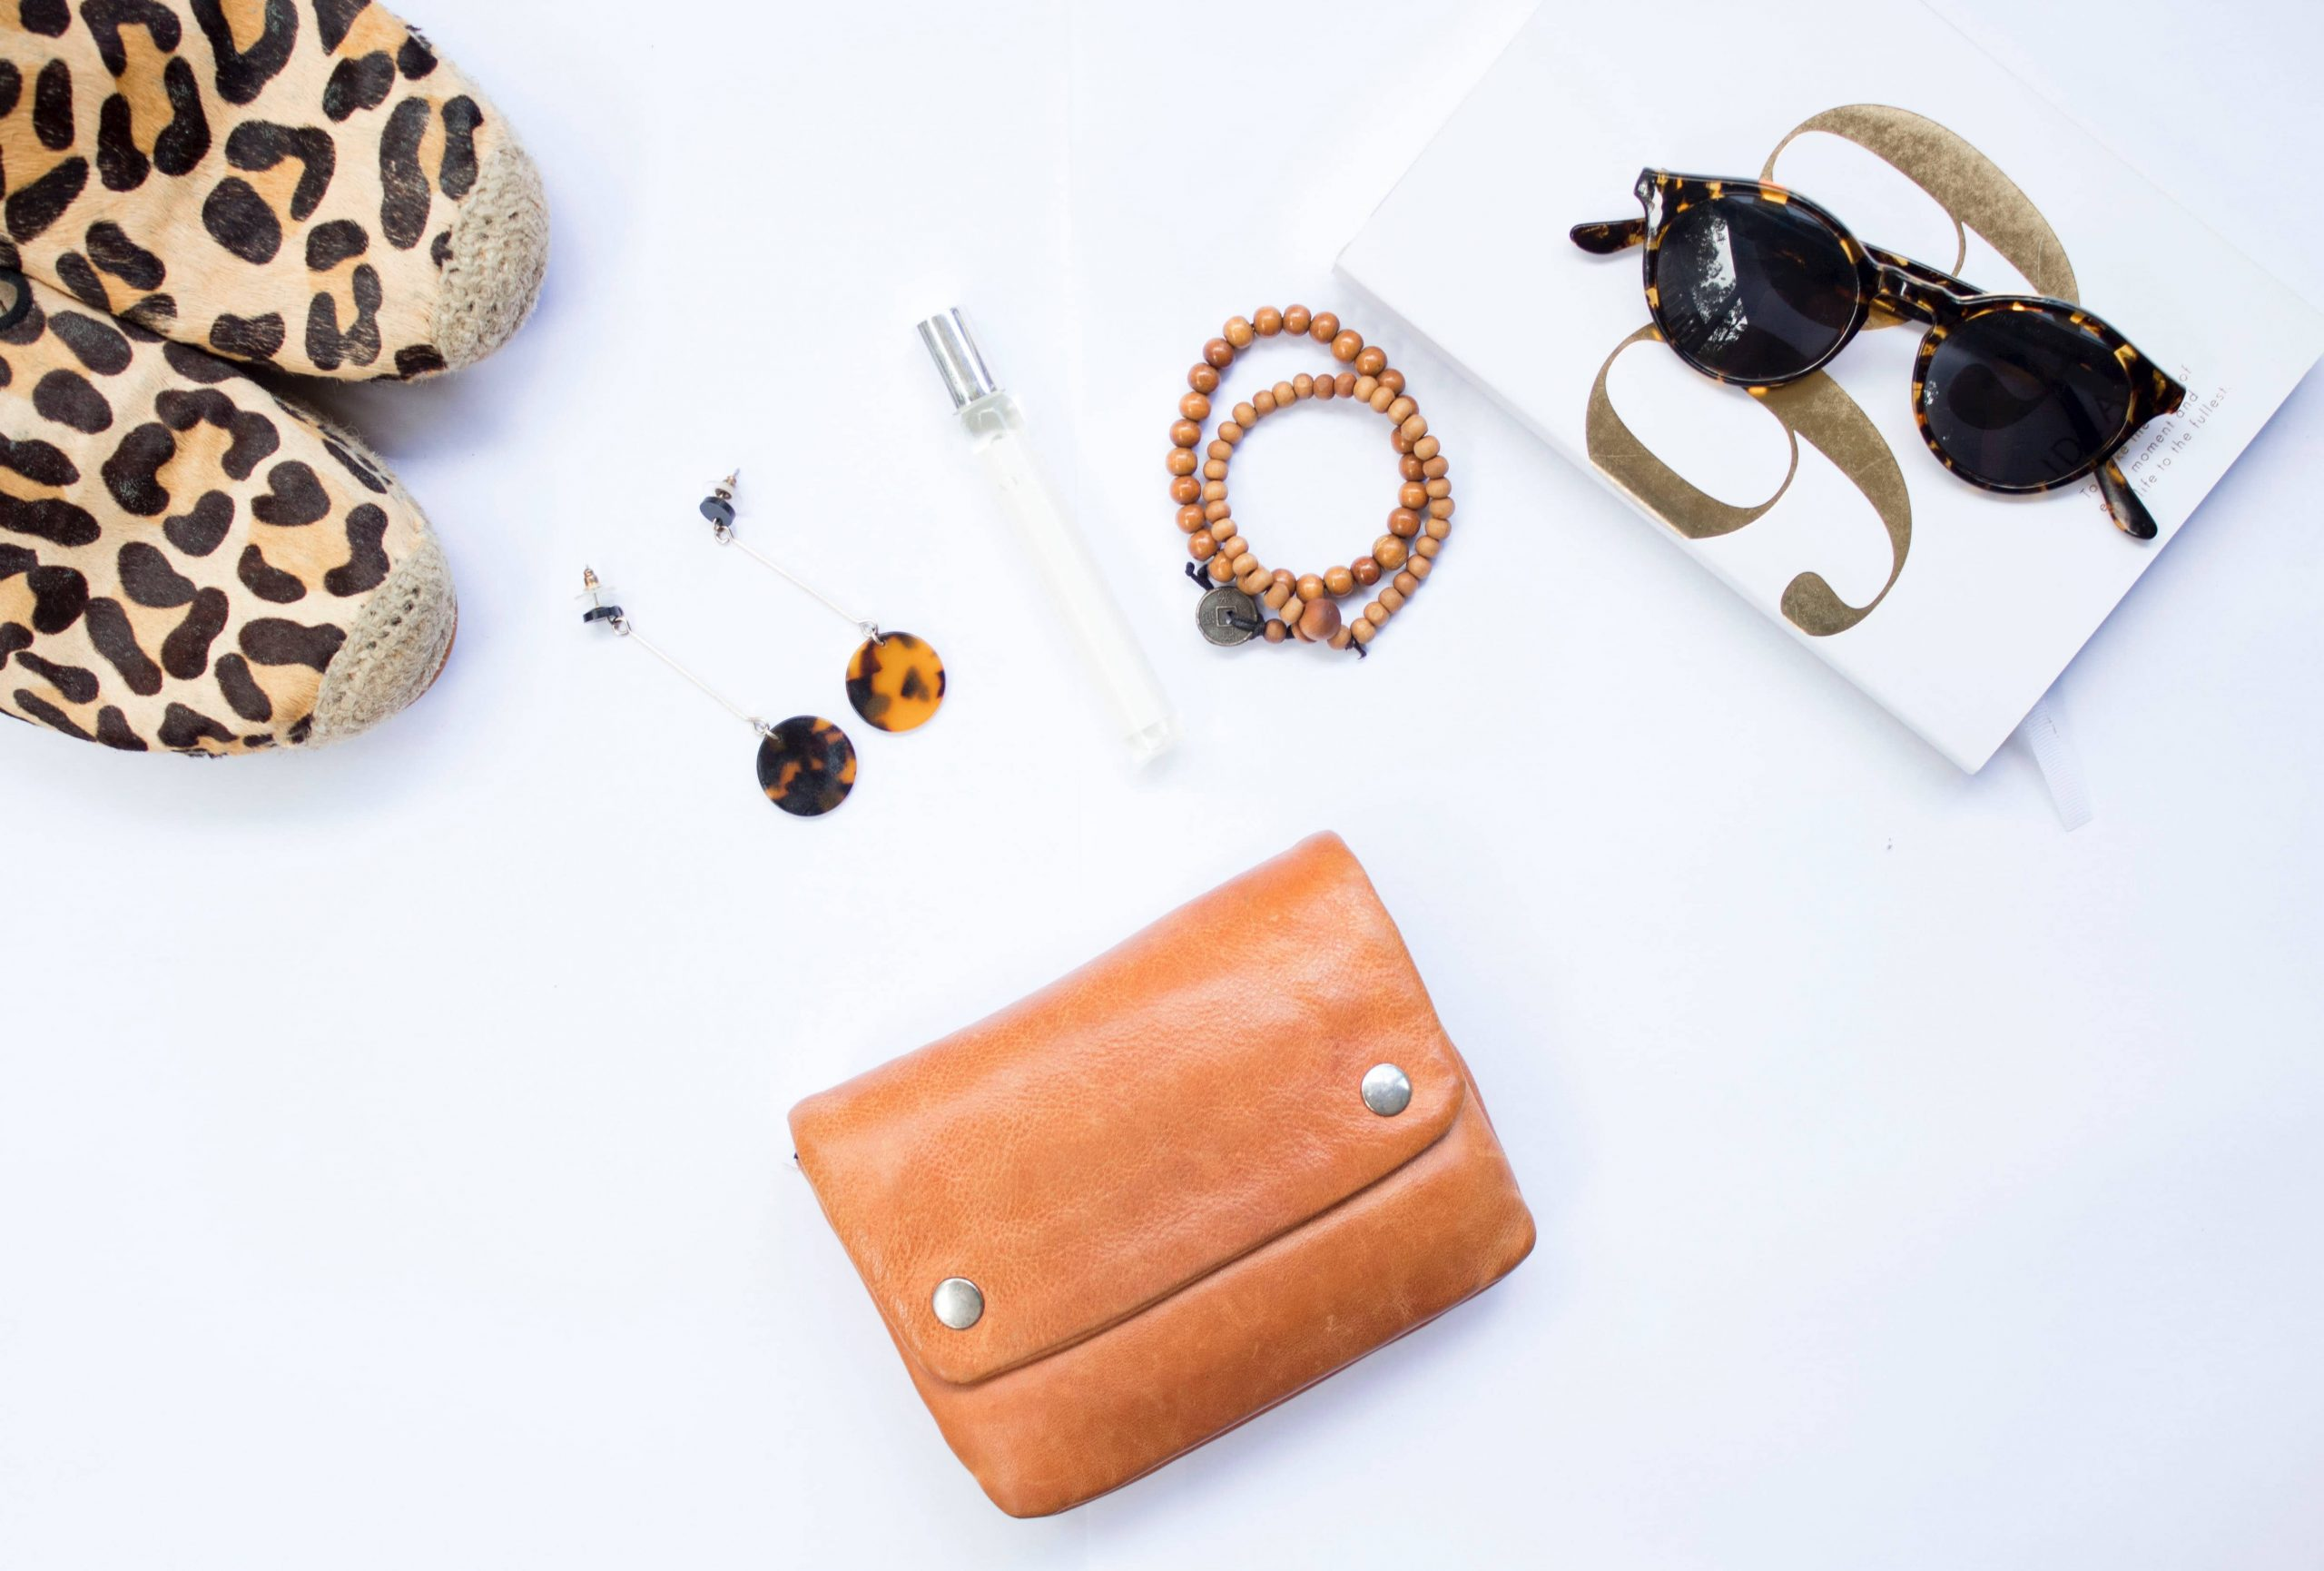 Top 5 Accessories to Boost Your Confidence